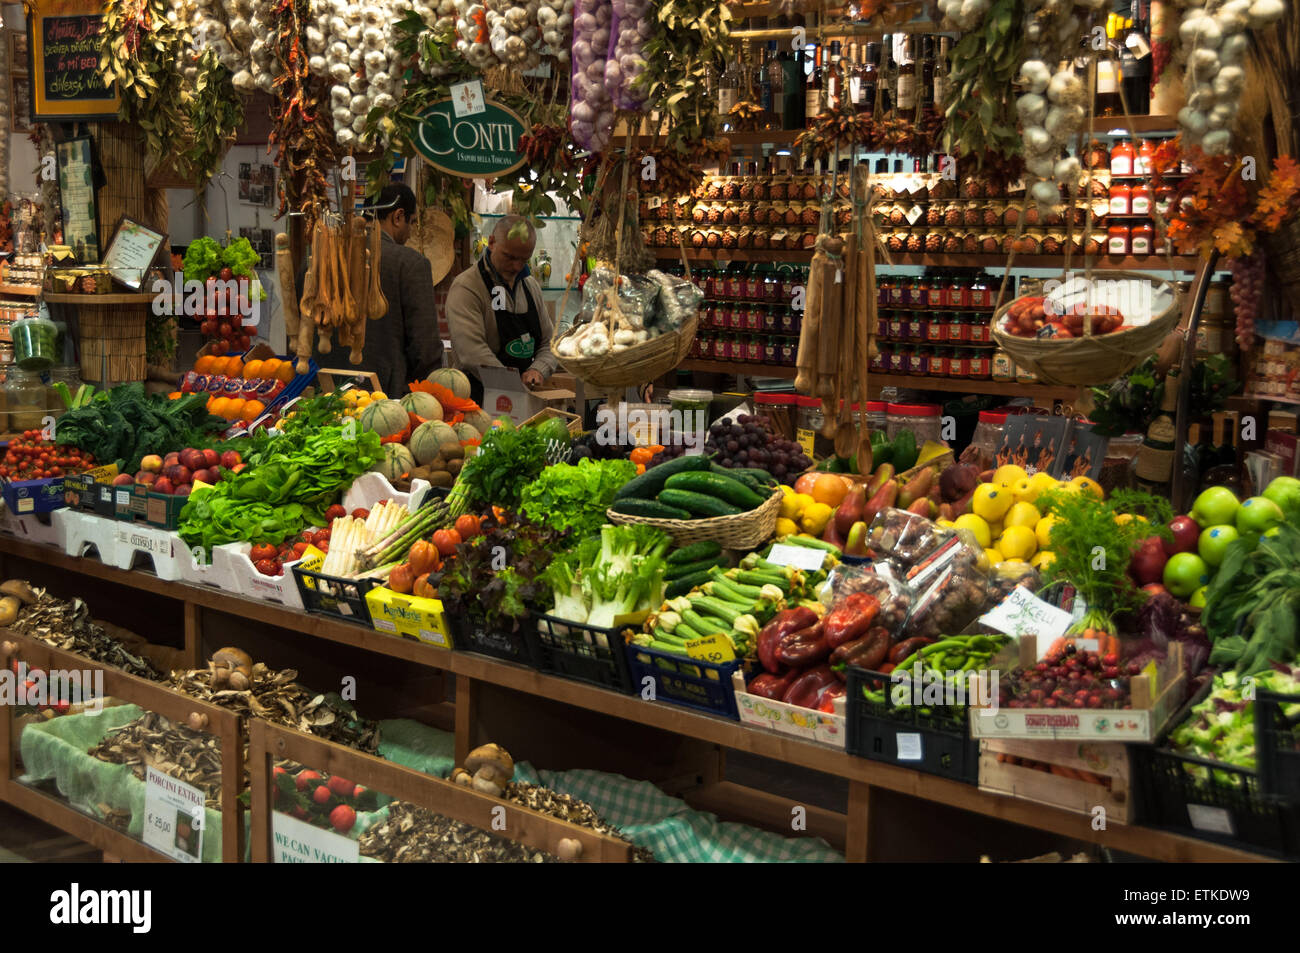 Interior of the Mercato Centrale food and flower market in Florence, Italy - Stock Image